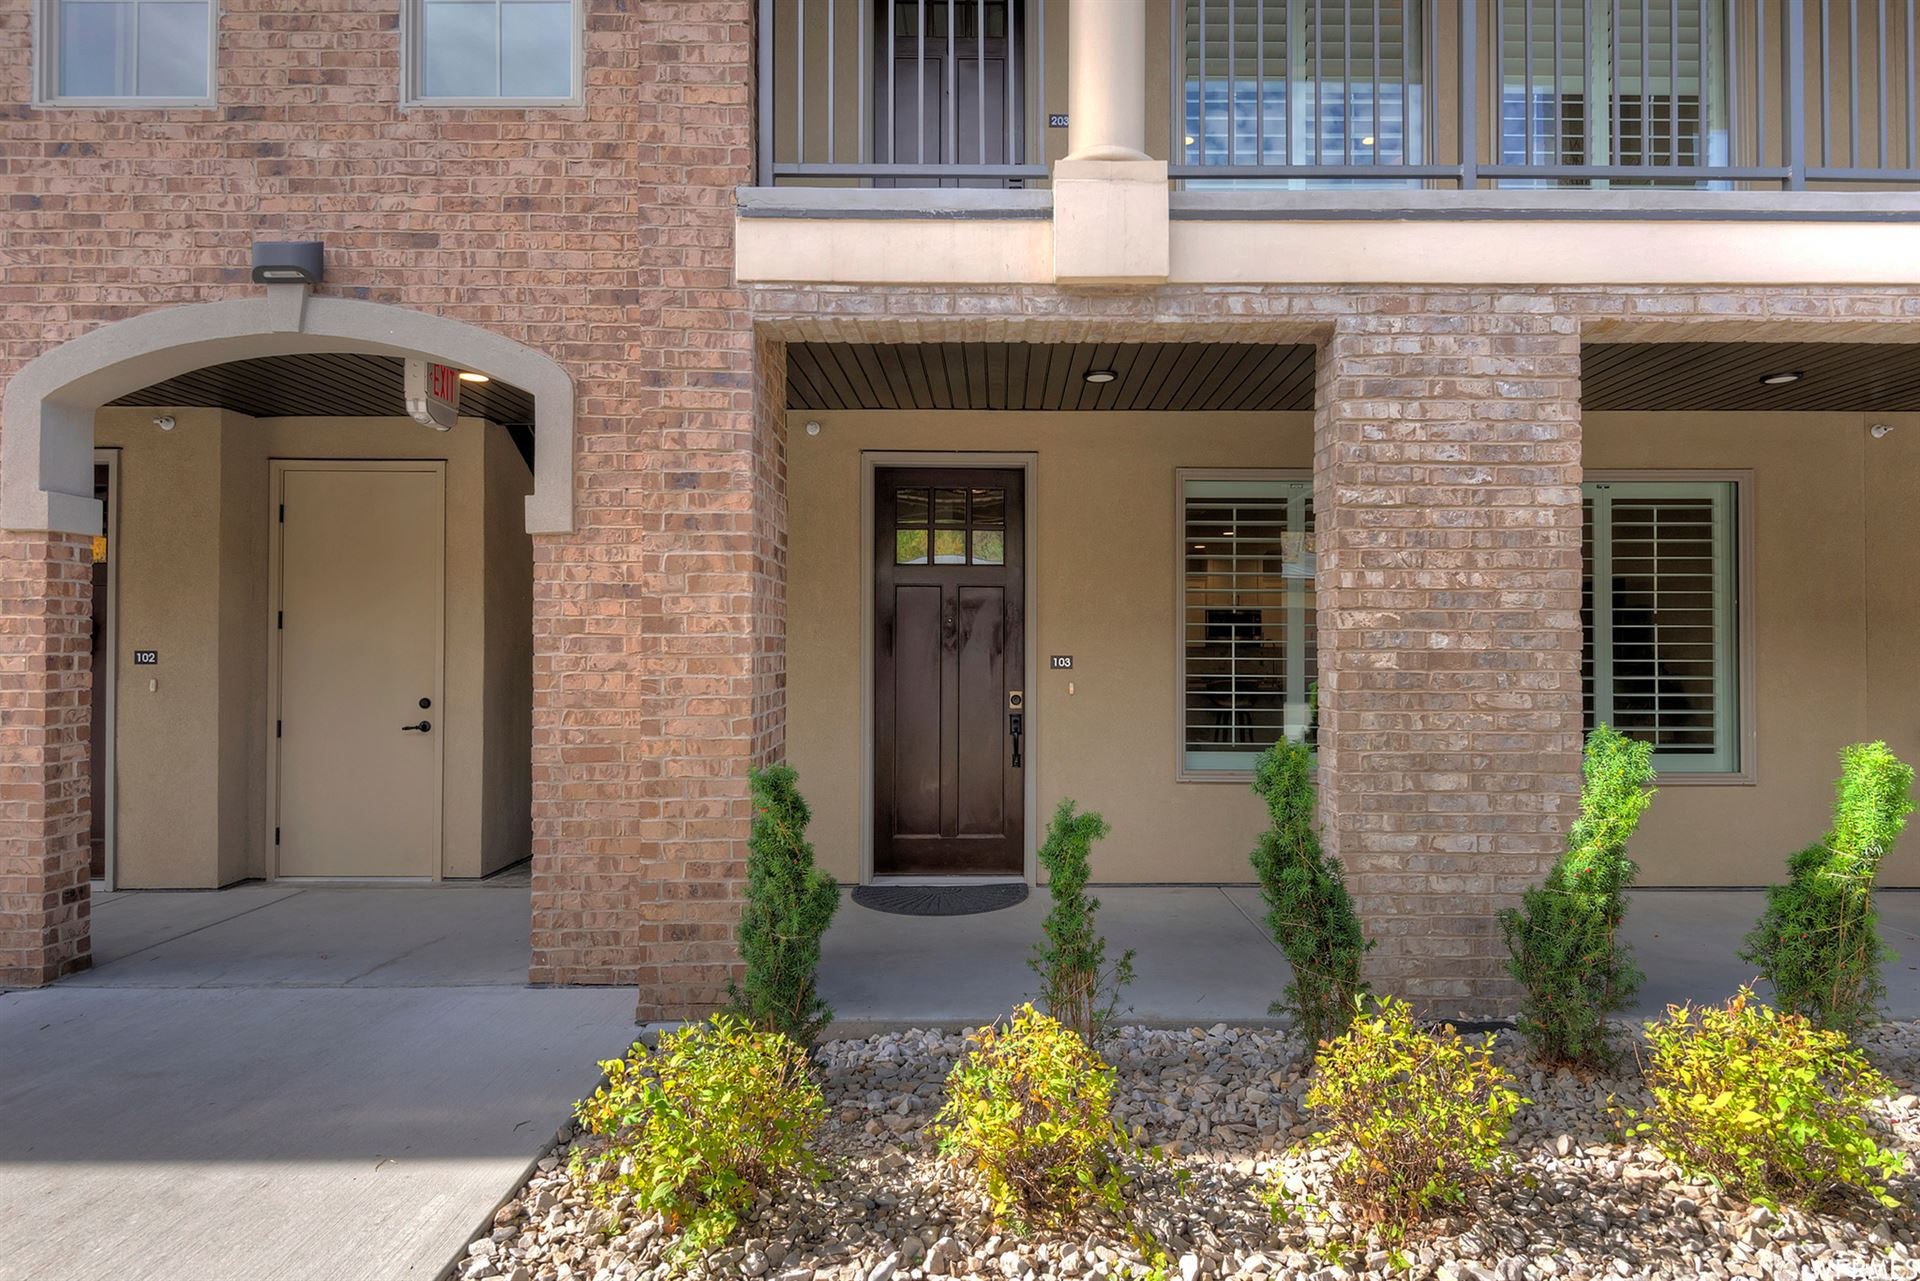 Photo of 2369 E MURRAY HOLLADAY S RD #103, Holladay, UT 84117 (MLS # 1776485)